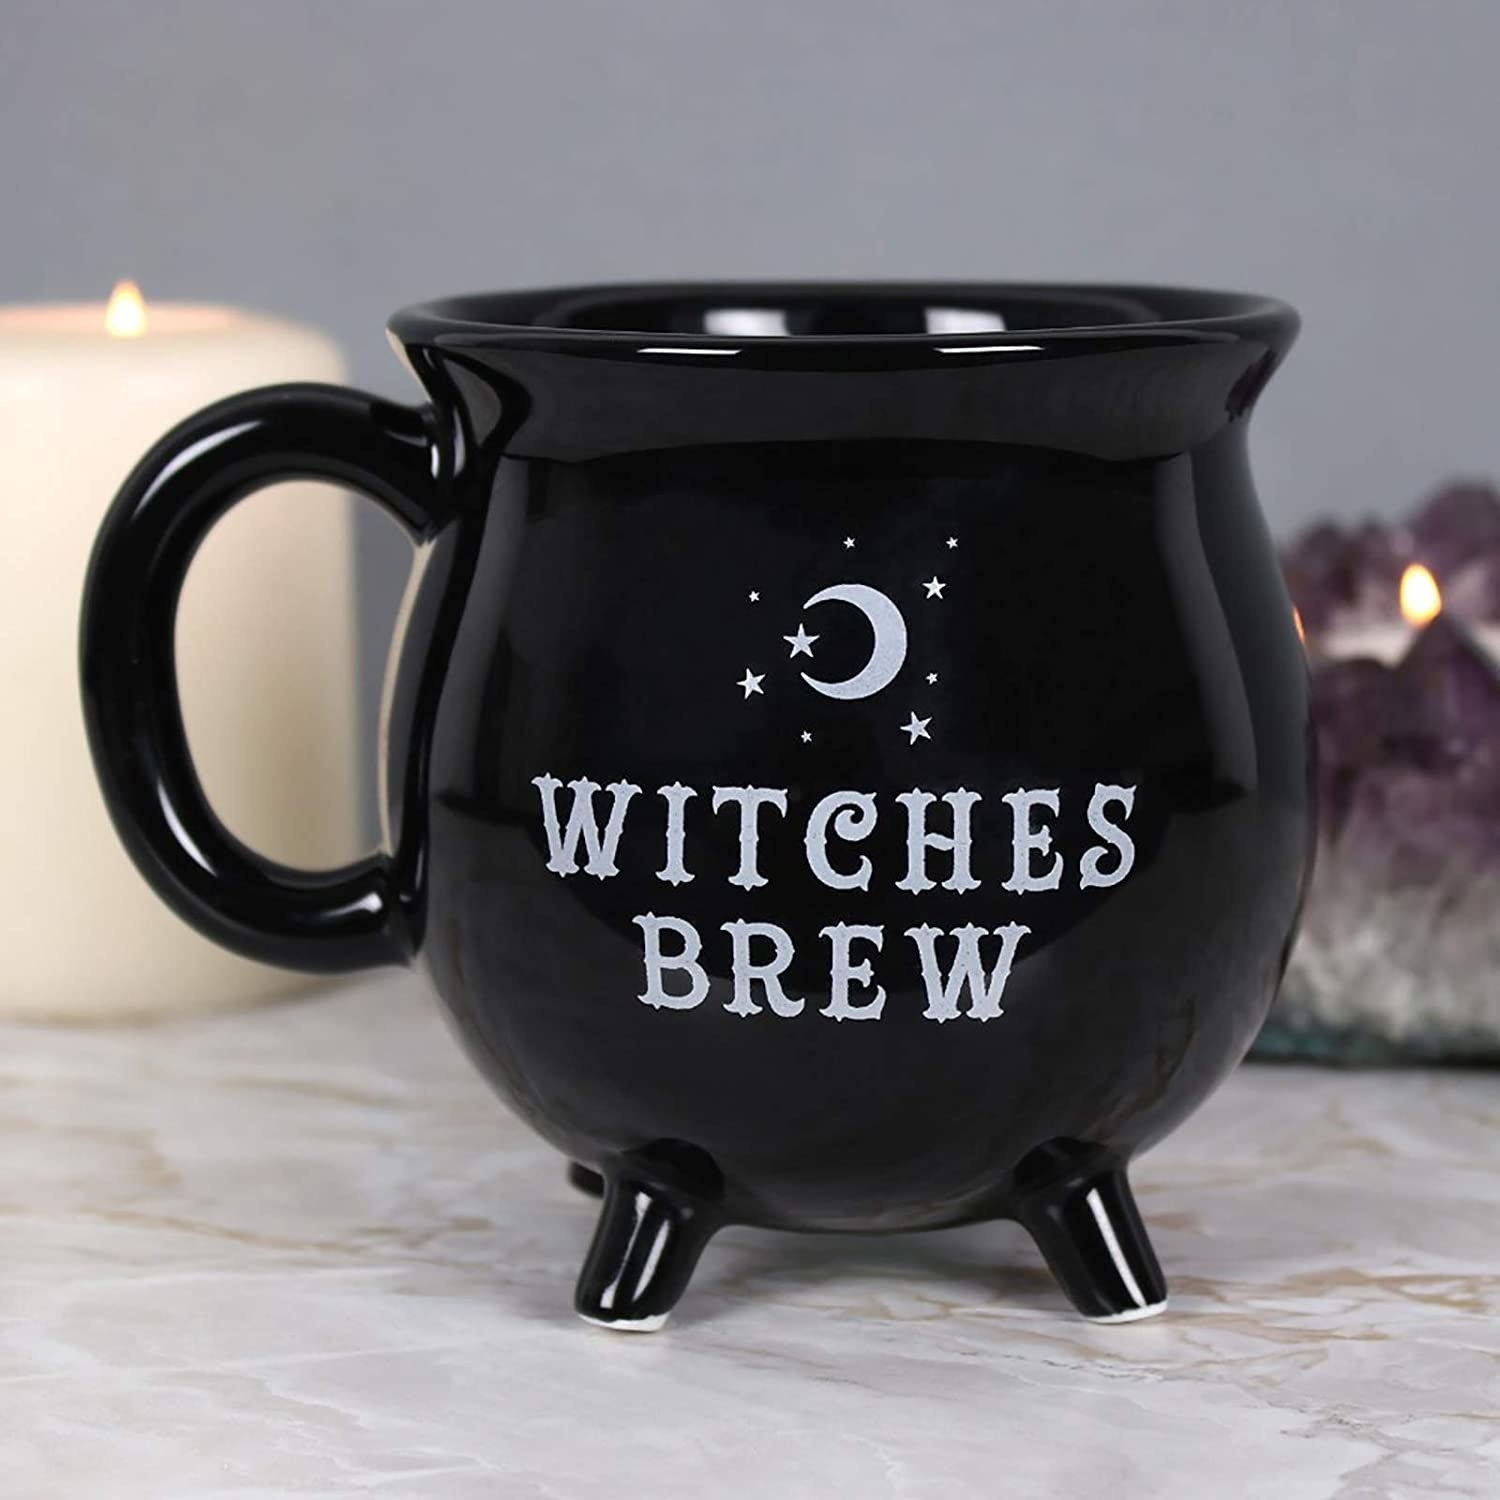 A cup that says witches brew